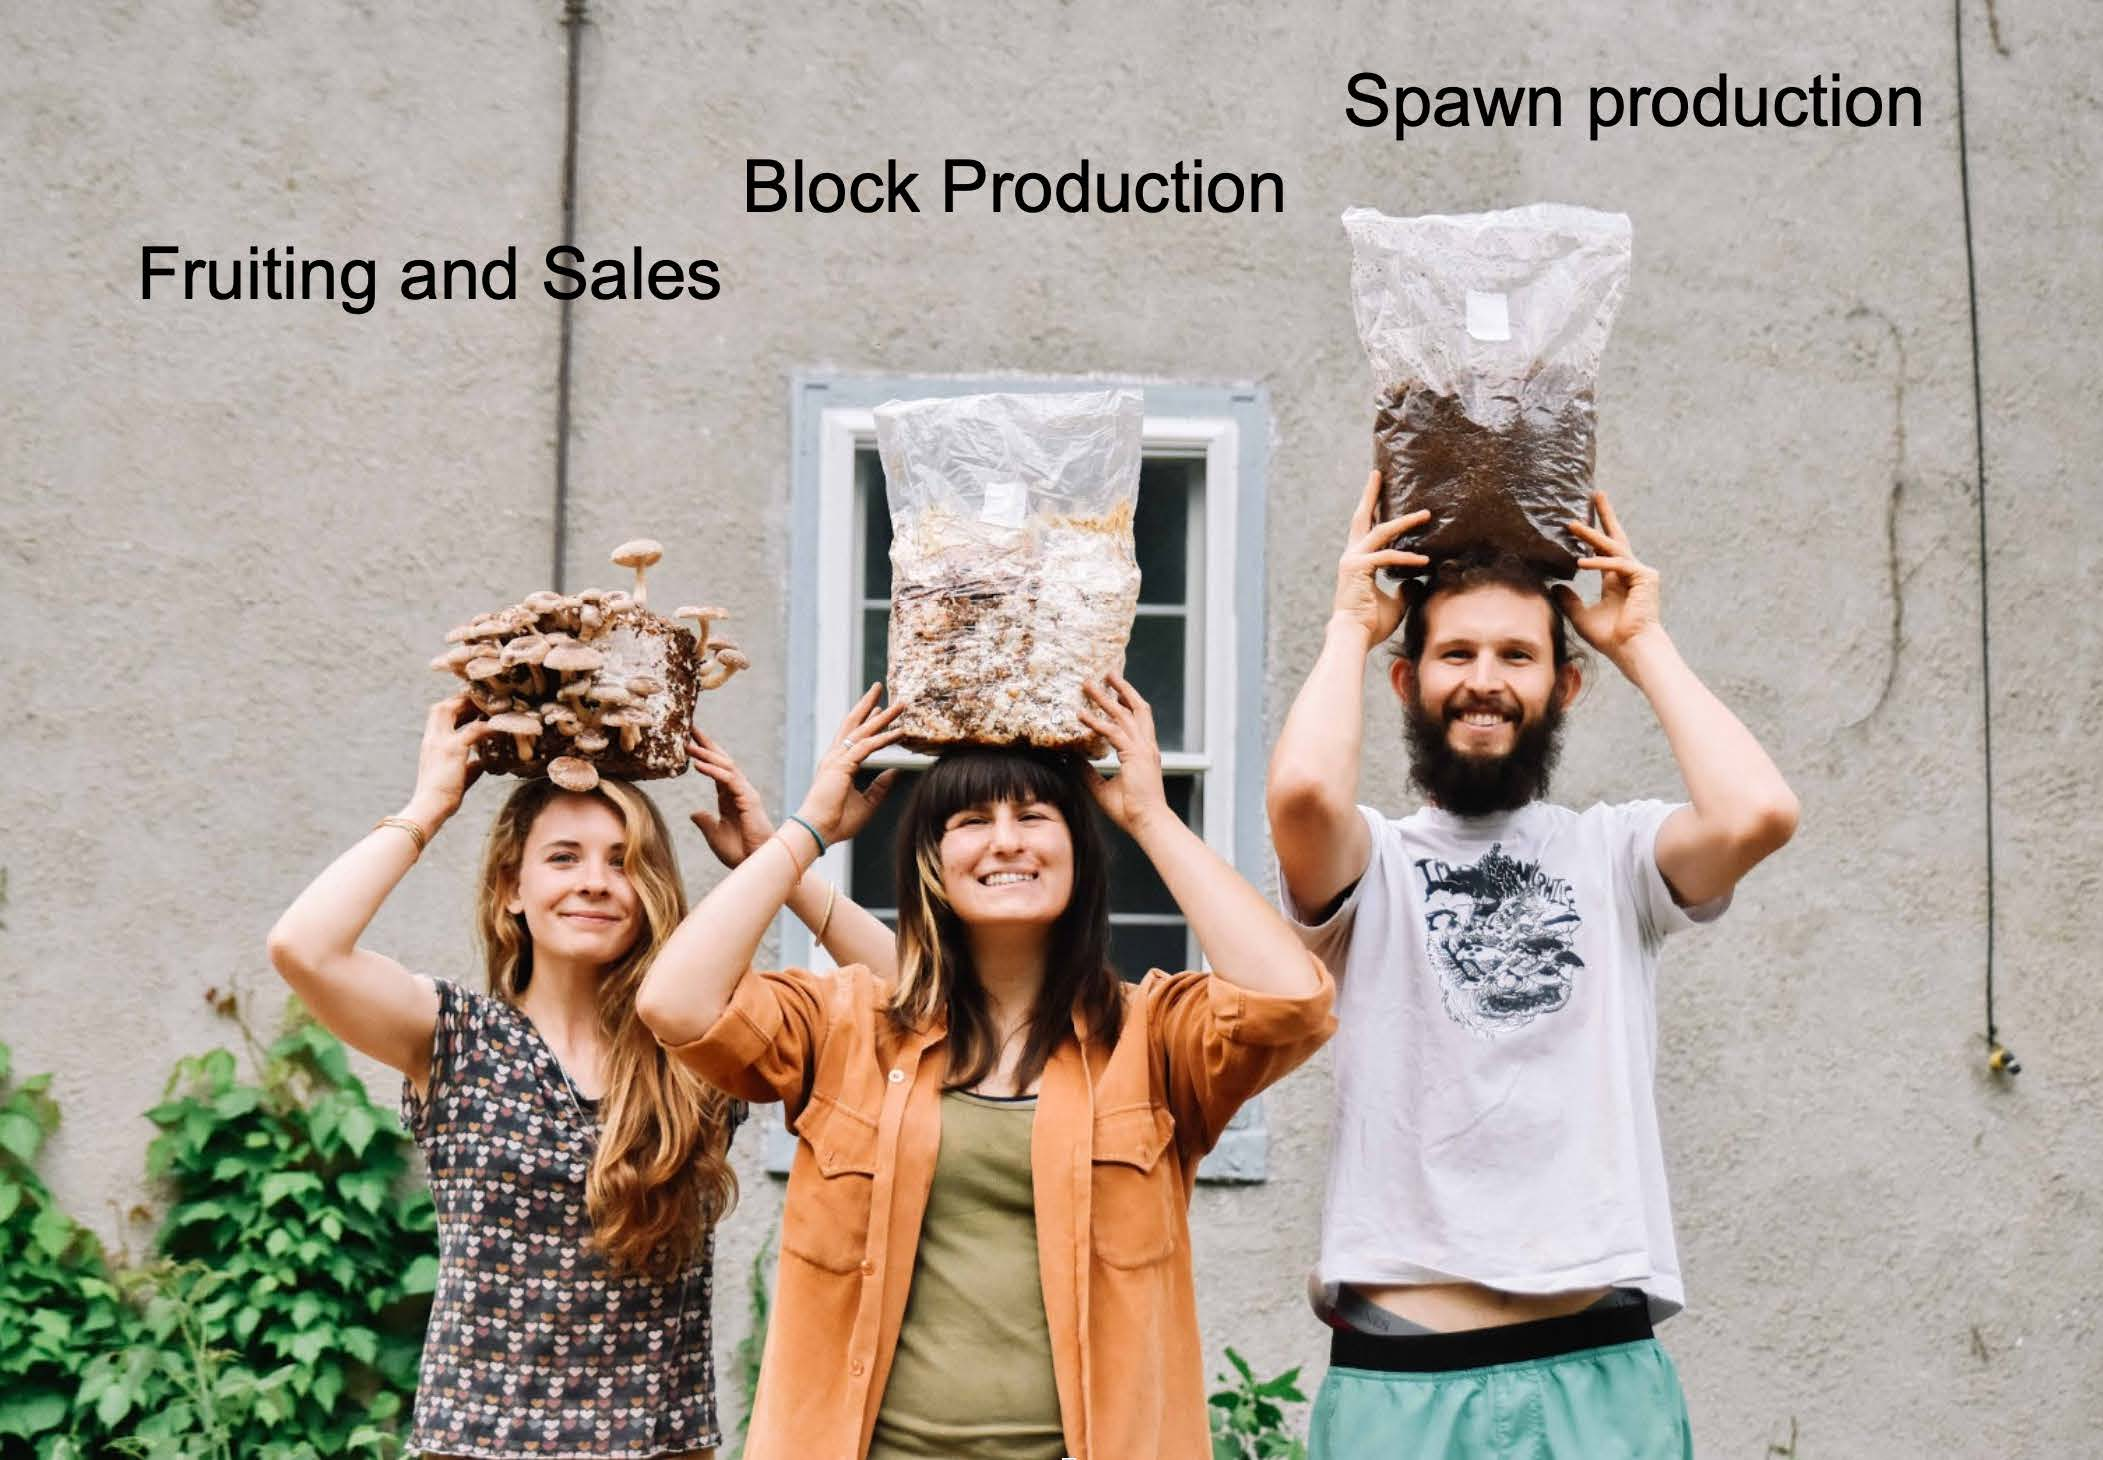 The three types of production methods are spawn, blocks, and fruiting sales.